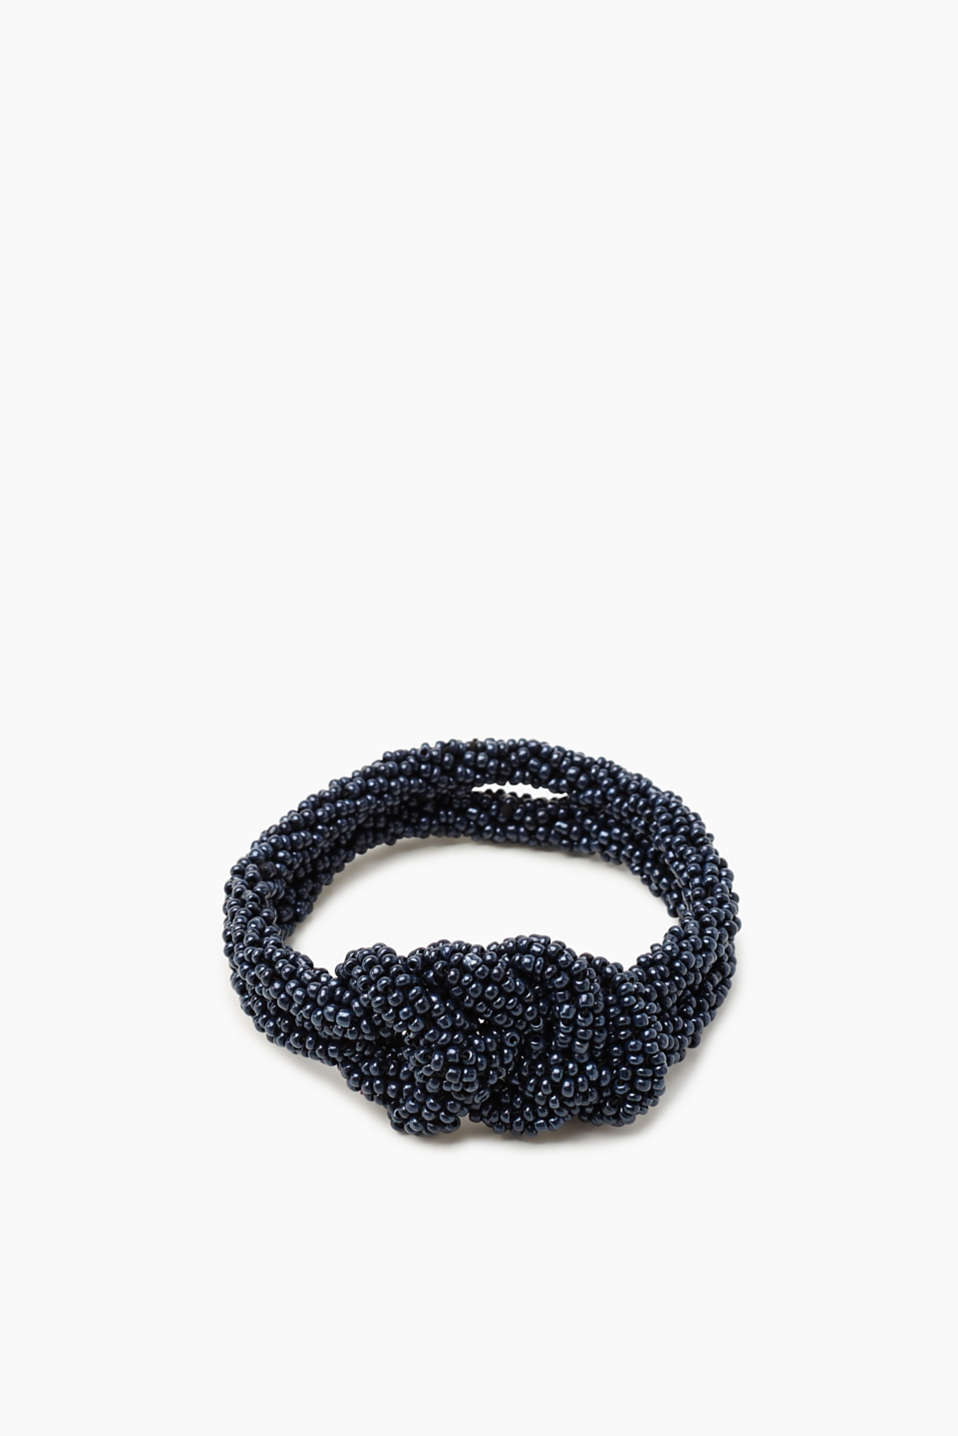 This slightly elastic double bracelet is made up of numerous beads and sophisticated knot details!